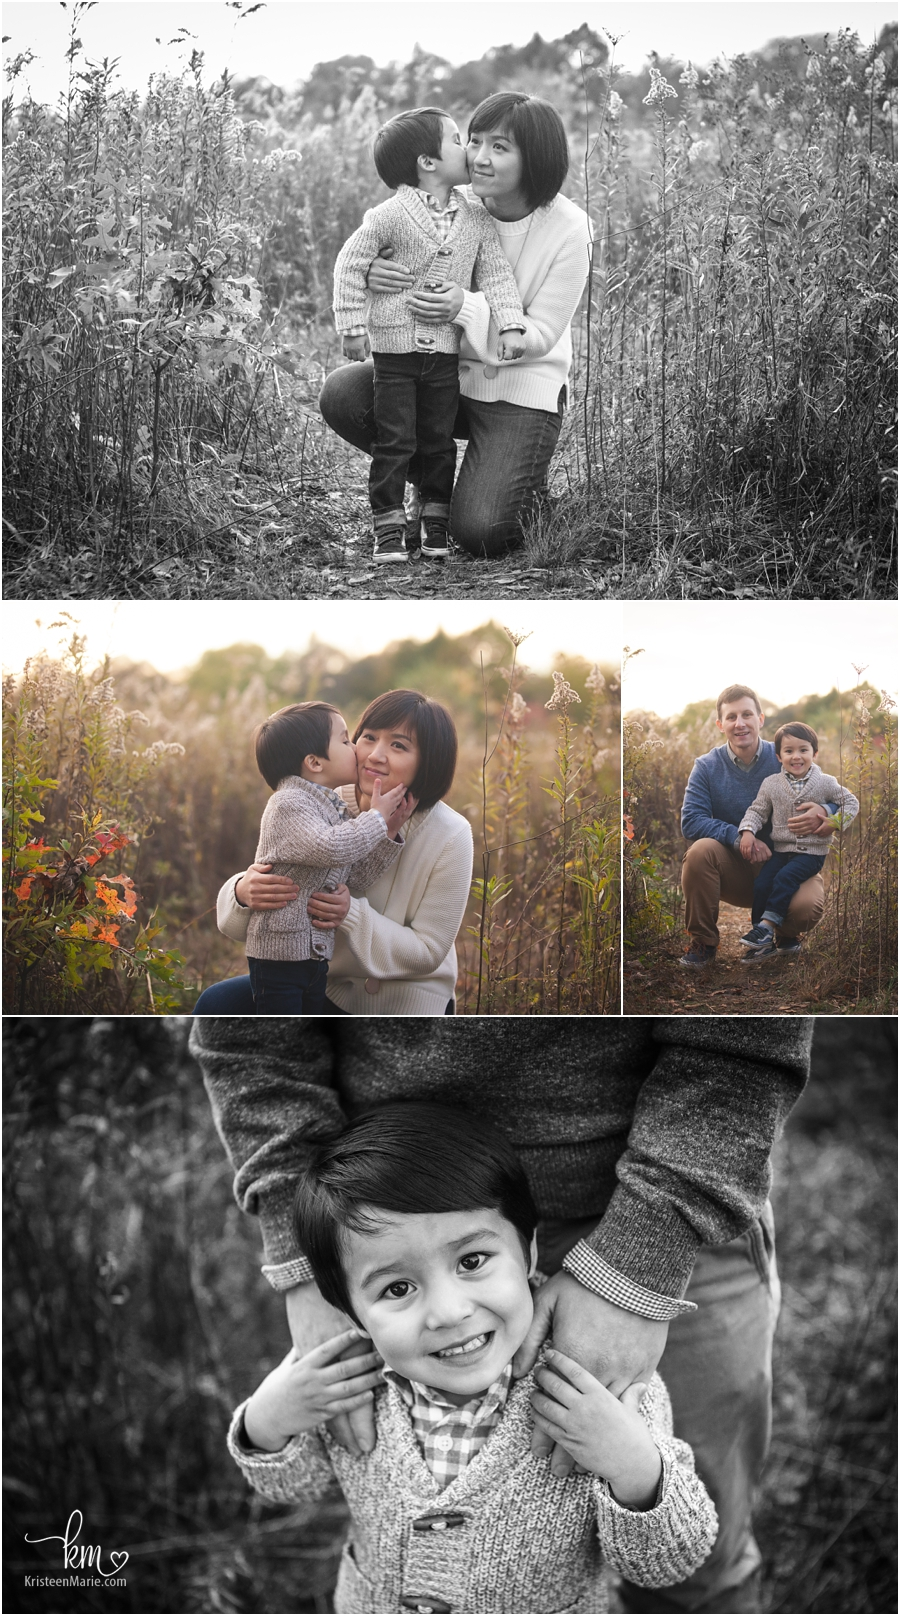 mom and dad with son - color and black and white images